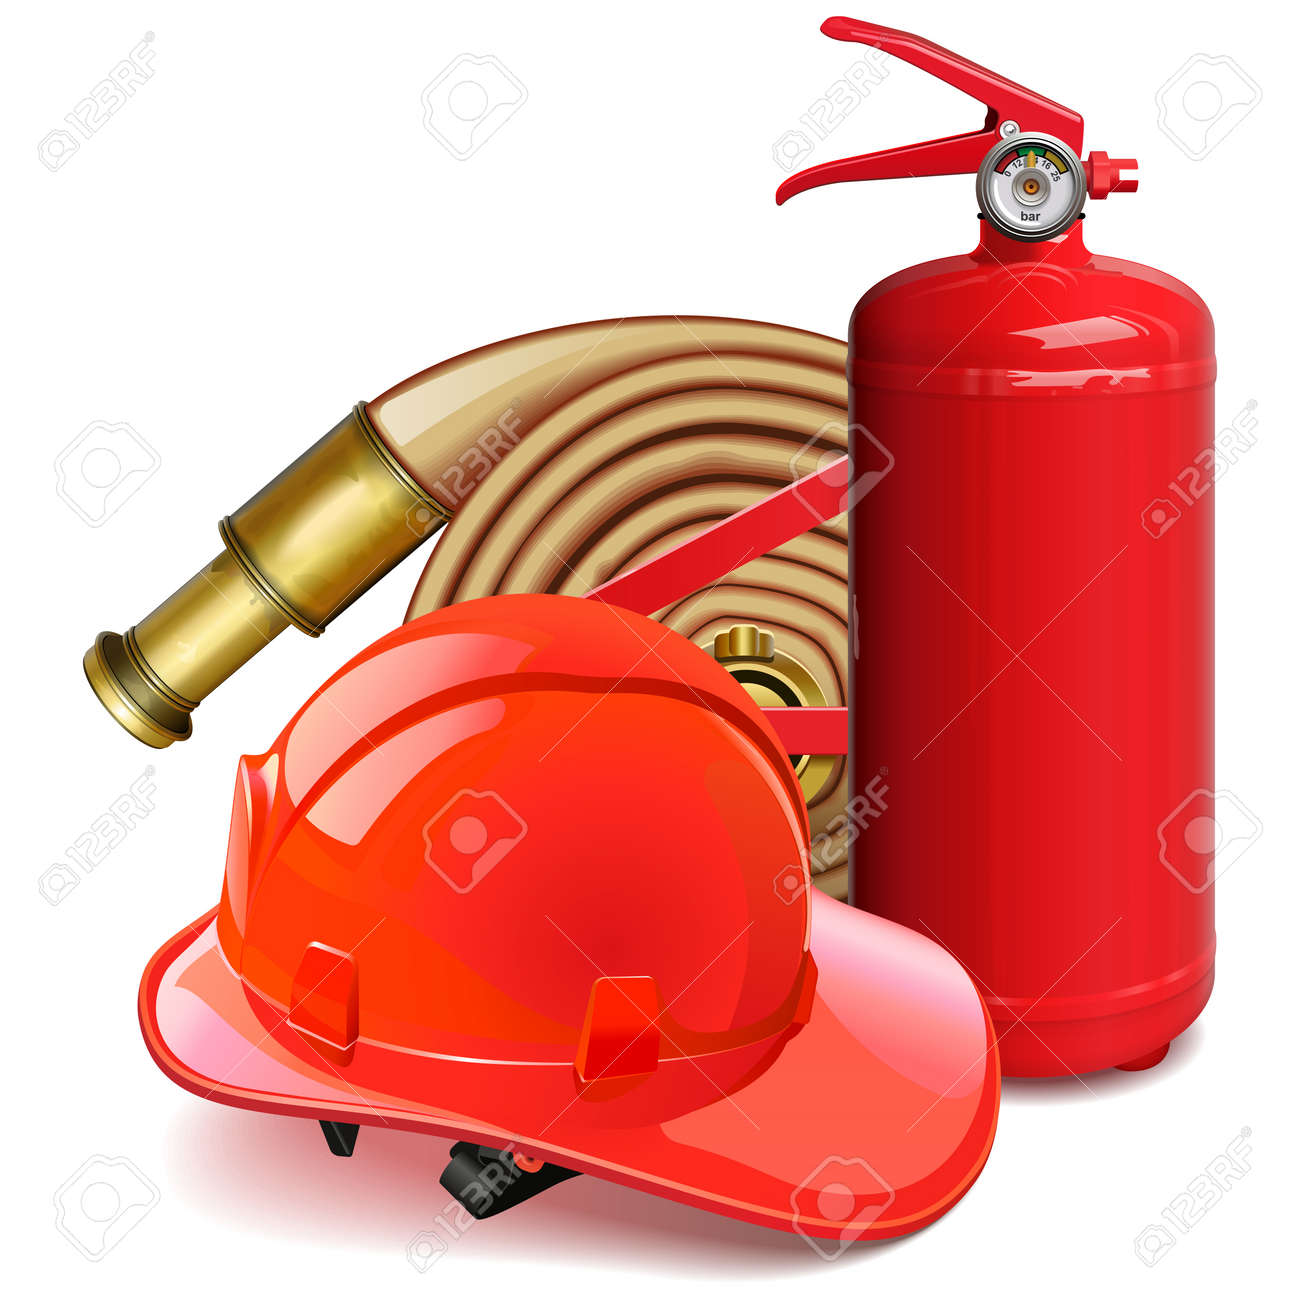 Vector Firefighter Concept with Red Helmet isolated on white background - 155711132